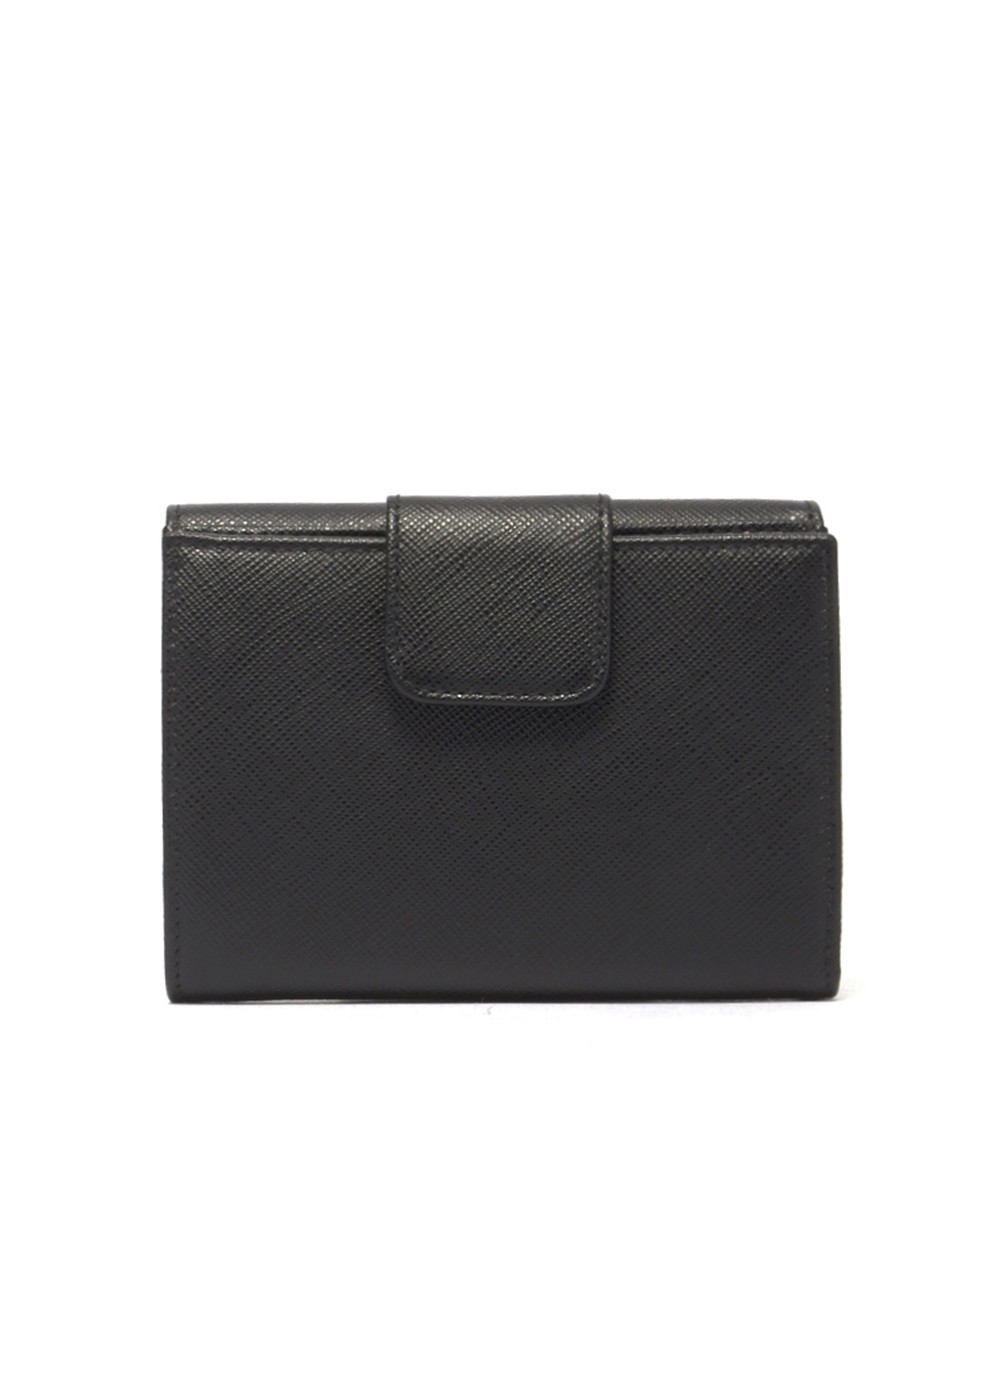 【最大35%OFF】Logo Leather Wallet|NERO|レディース財布|PRADA(T)